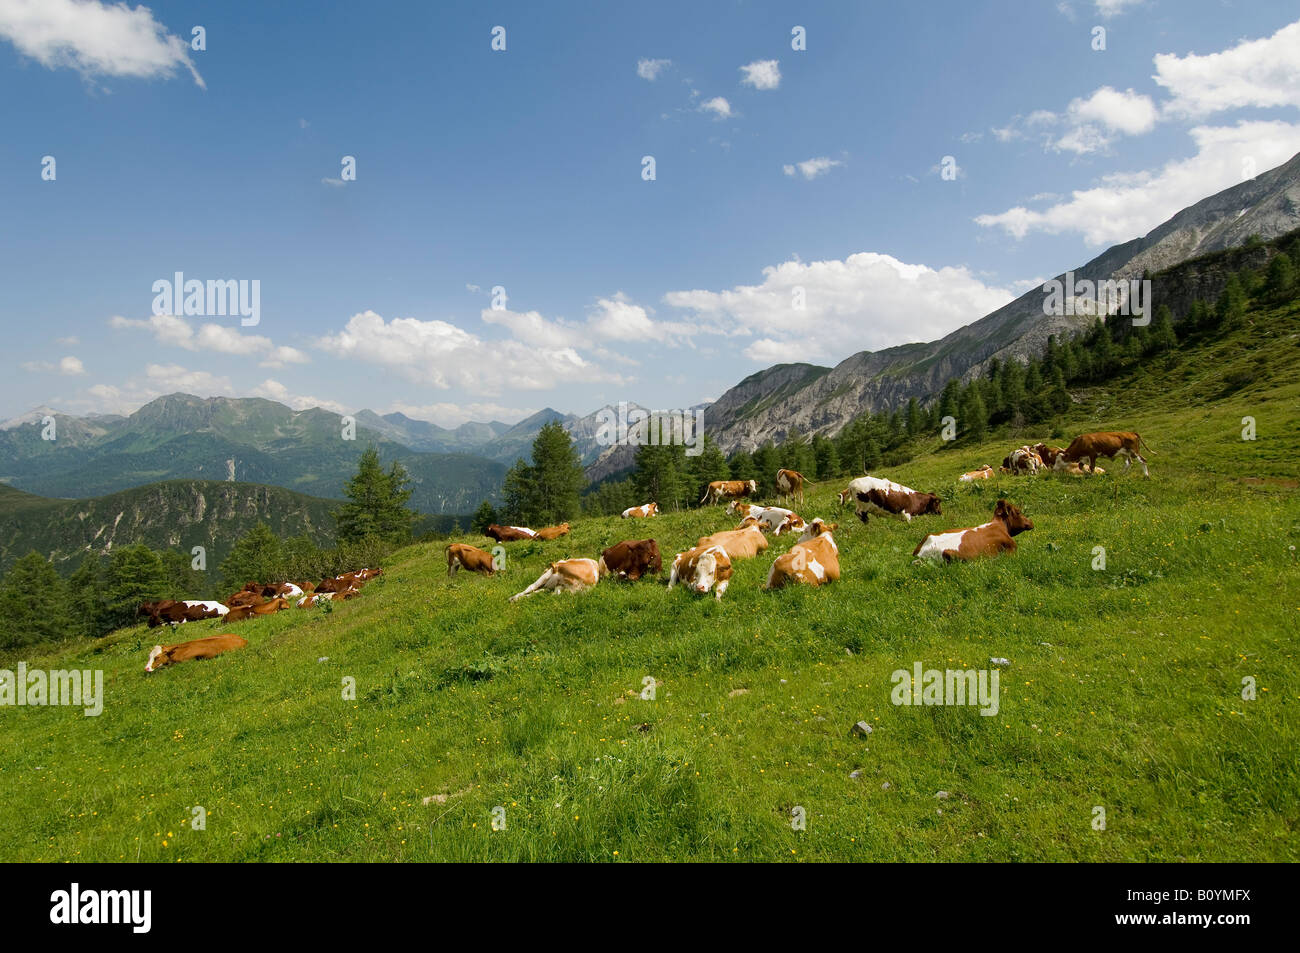 Austria, Salzburger Land, Herd of cattle grazing in a field - Stock Image